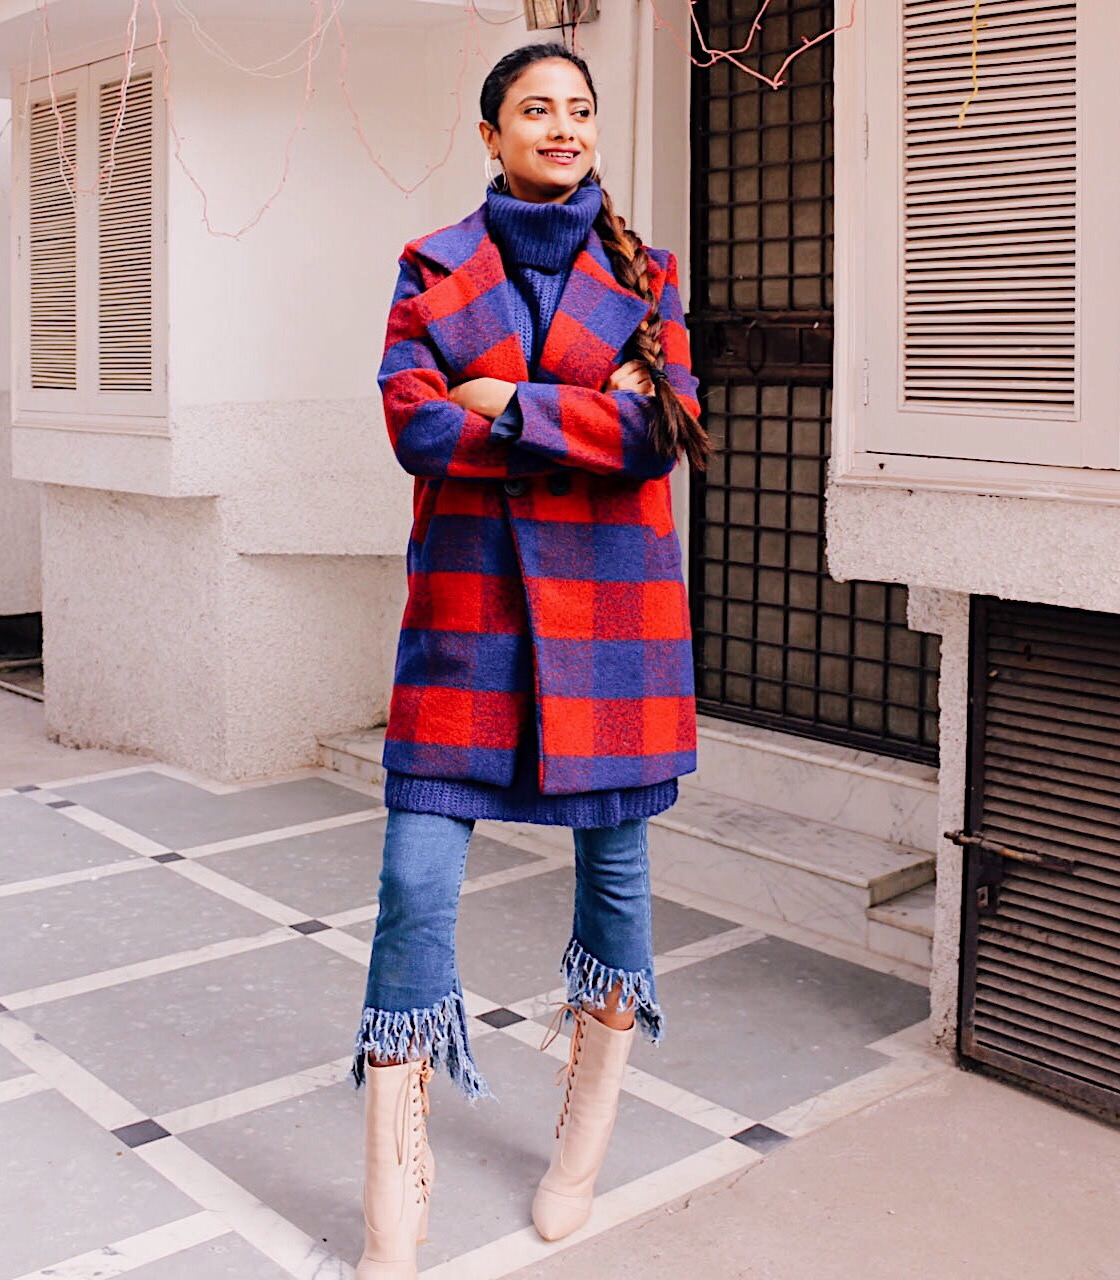 how to make a chic style statement in winter outfits, statement coat, statement outerwear, style  plaid, style check outerwear, fringed denim, blue denim, updated denim, style updated denim, refreshed denim, effortless chic, parisian look, parisian style, winter outfit inspiration, high neck knit, red and blue, nude shoes, 4thandreckless, lightinthebox, lightinthebox review, daily outfit inspiration, wear in winter, make a statement, style statement, 2017 top blogger outfit,  top winter outfit, what to wear in winter, 2017 on trend outfit, trending in 2017, winter trends 2017, step hem denim, fresh outfit idea, fresh in winter, top indian luxury blog, indian fashion blogger, indian style blog, uk blog, london blog, european style, london street style, 2017 london street style, london girl, london style